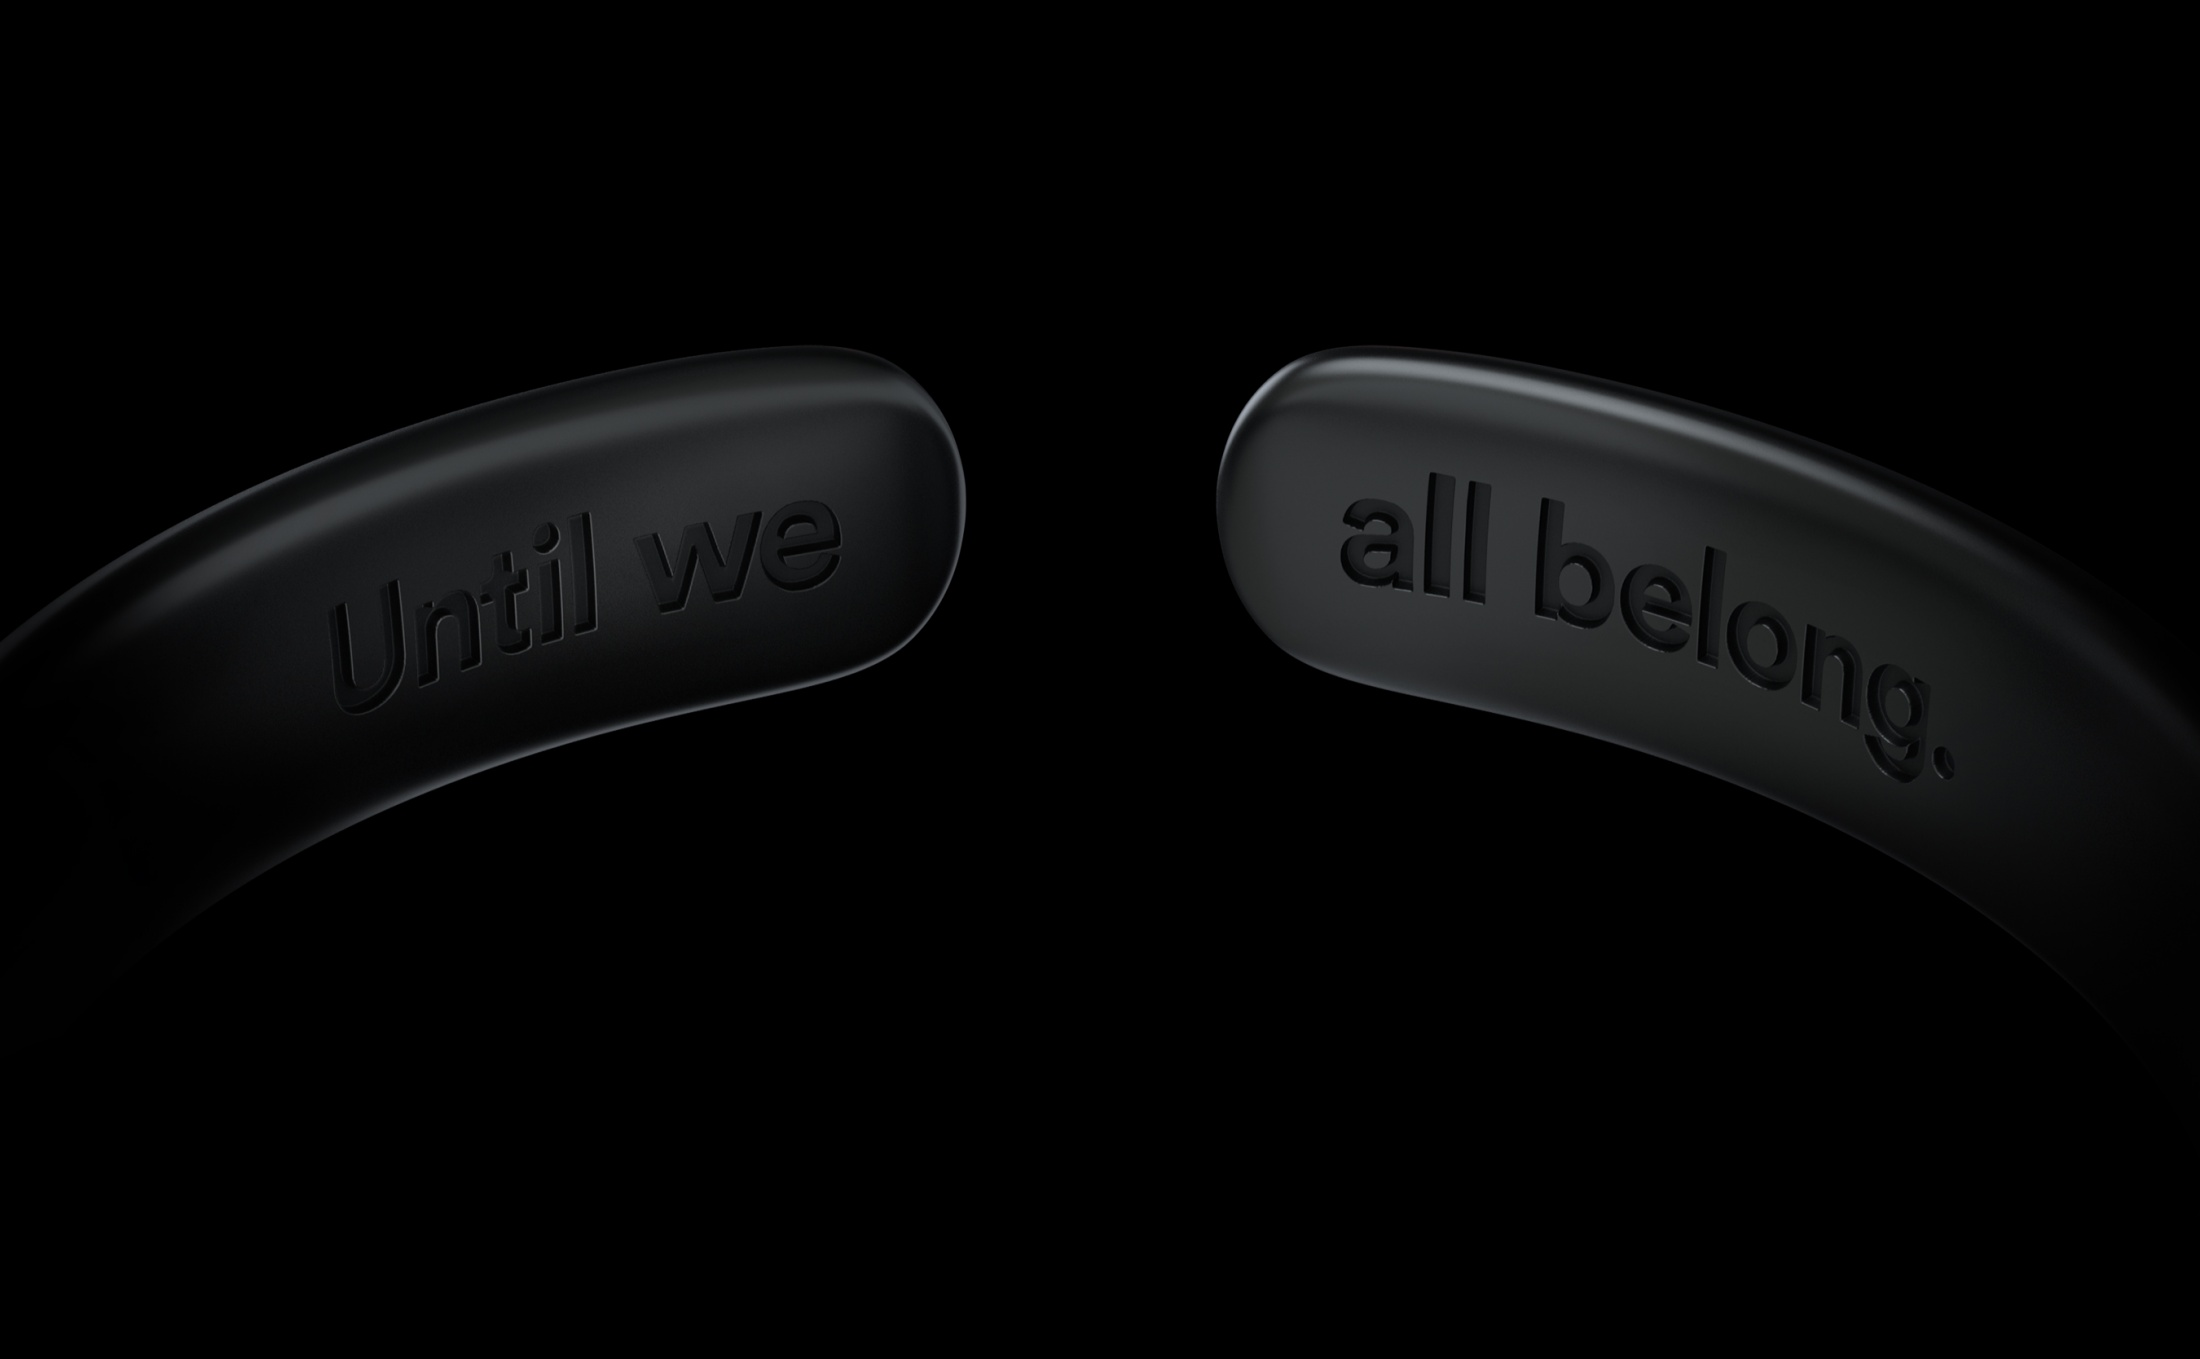 Thumbnail for Until We All Belong